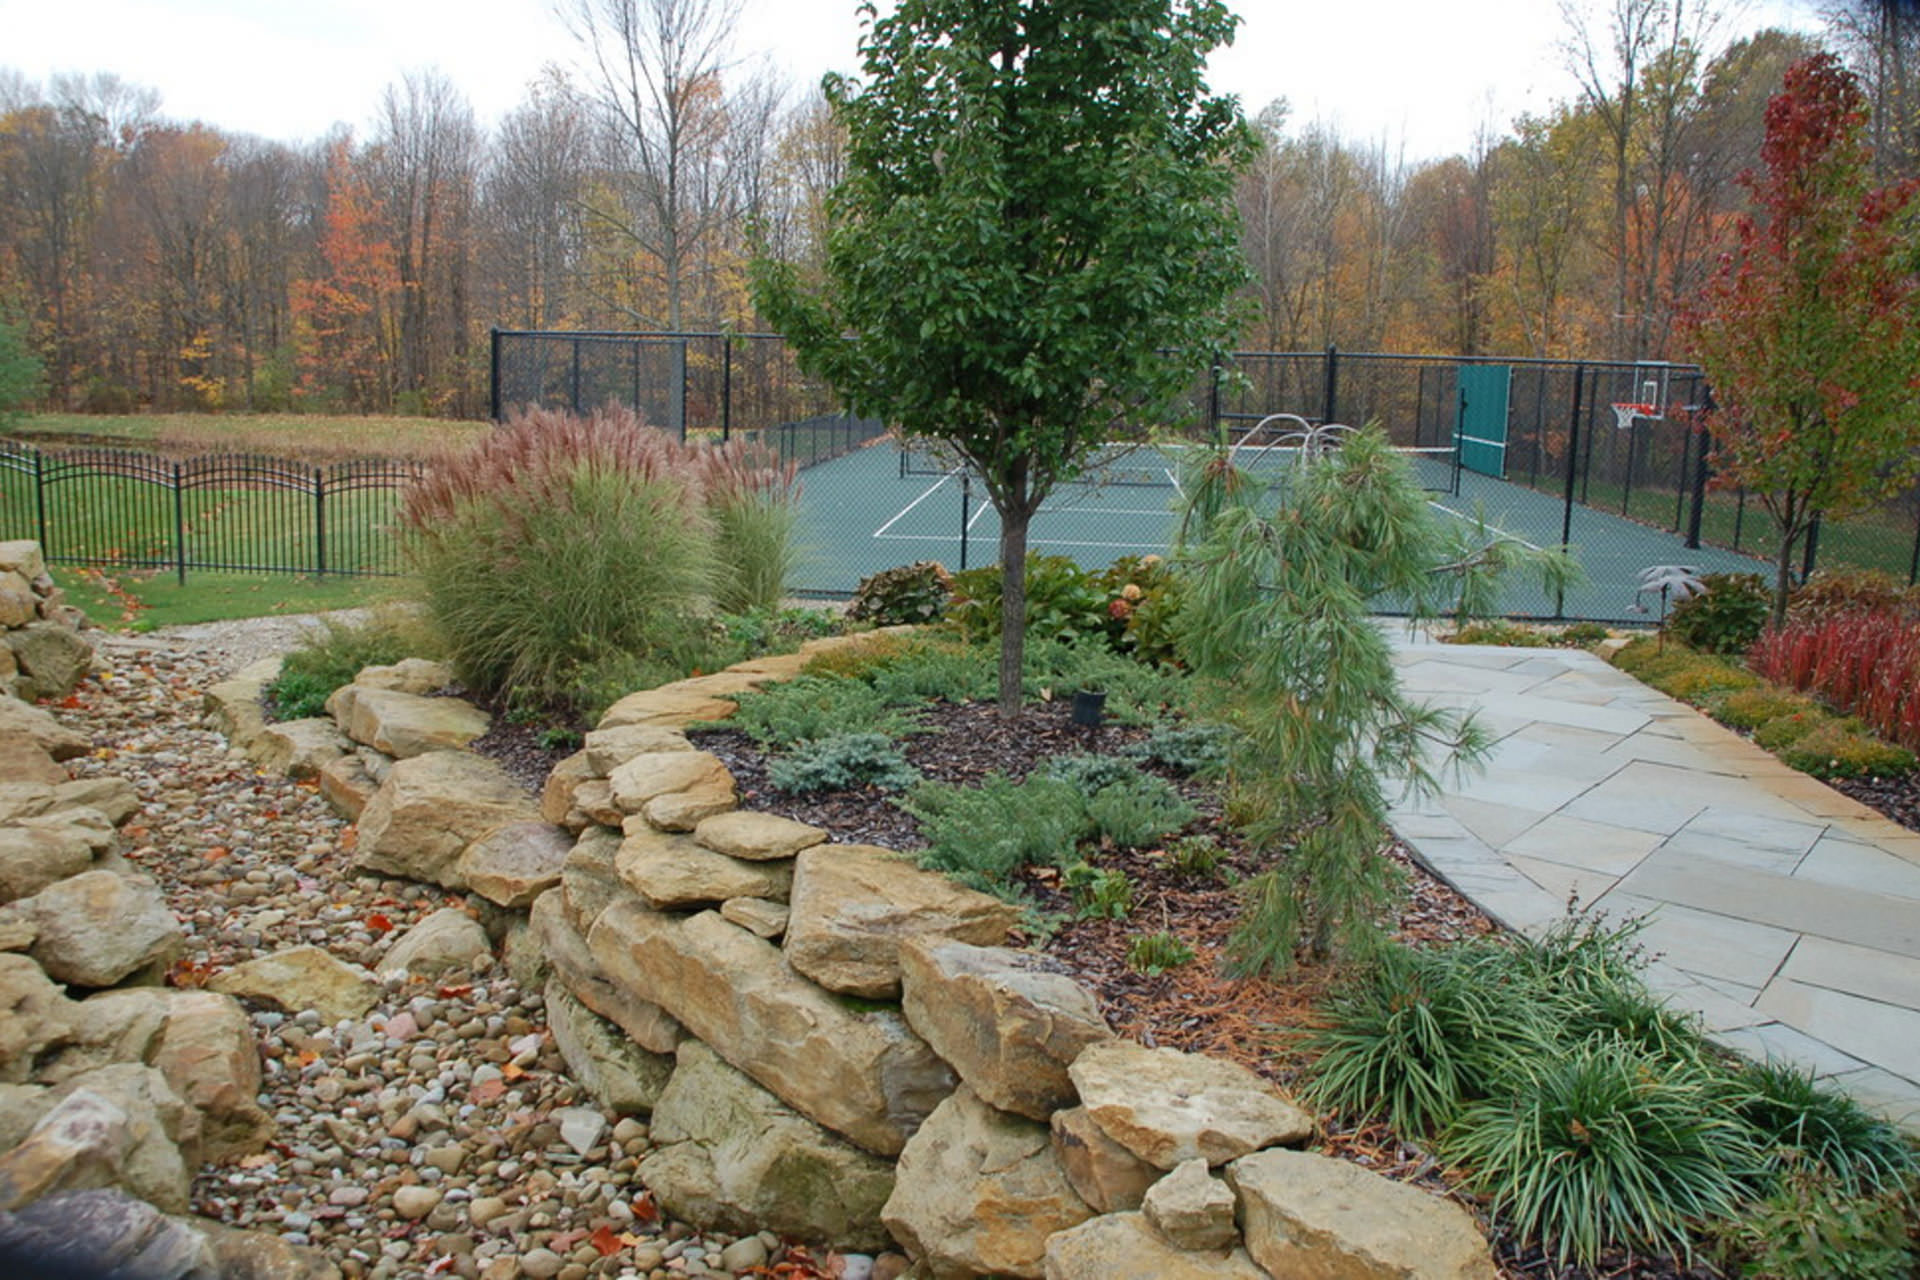 Planning an Outdoor Space - Dry Creek Bed